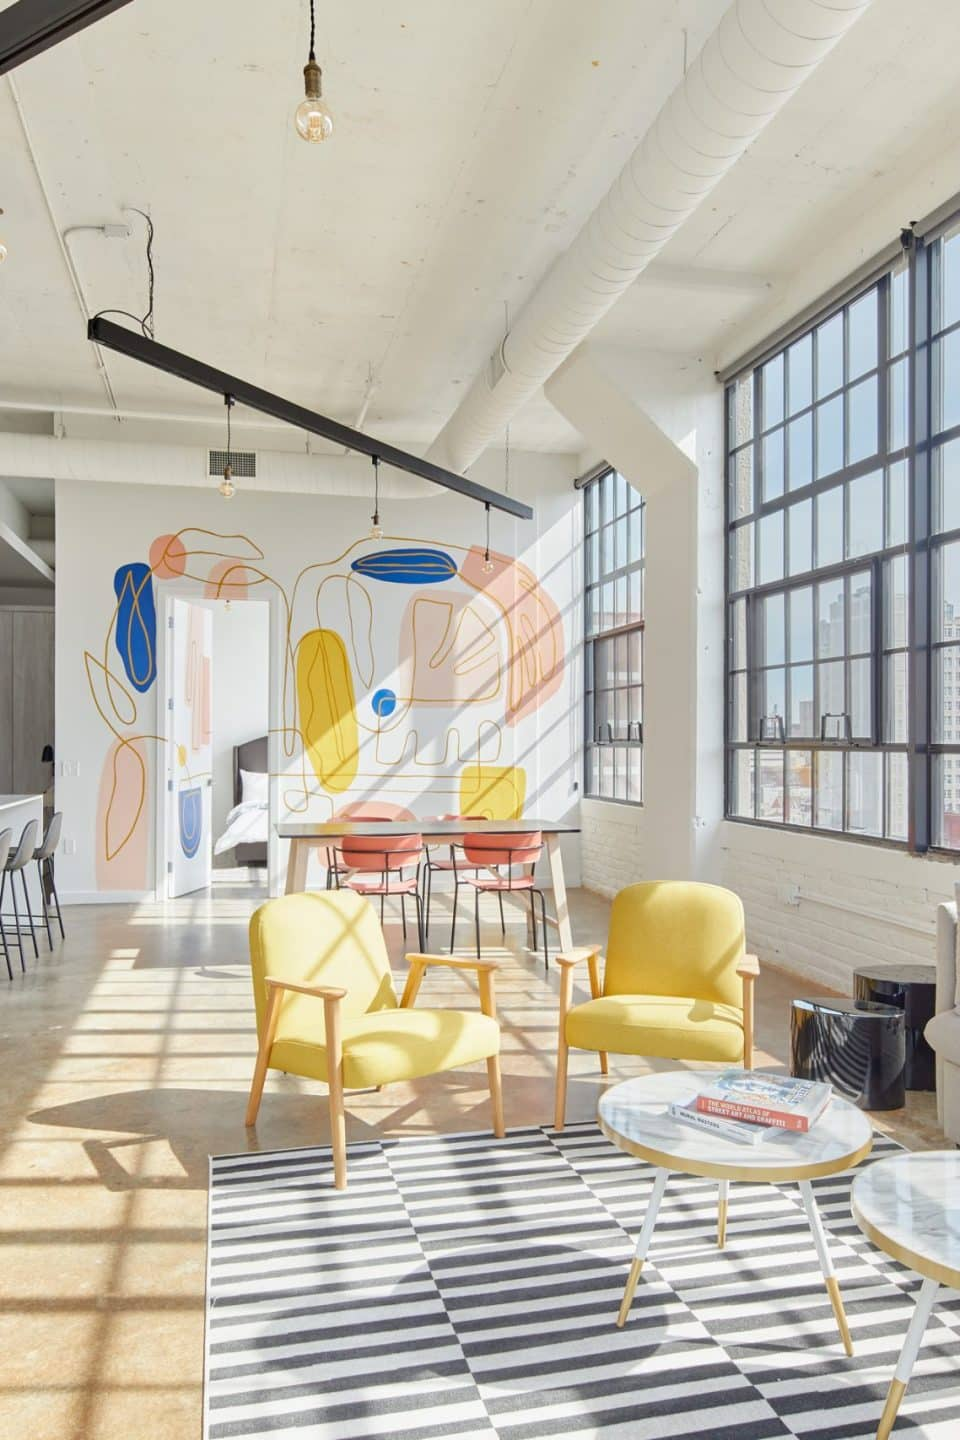 For One Enterprising Gallery, All of Philadelphia Is an Exhibition Stage